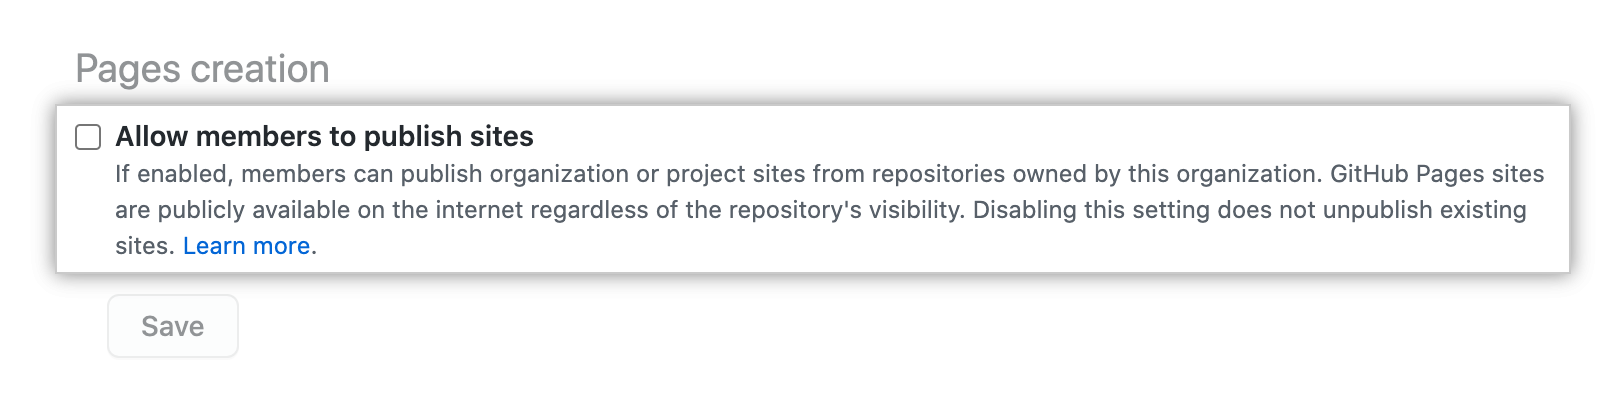 """Unselected checkbox for """"Allow members to publish sites"""" option"""